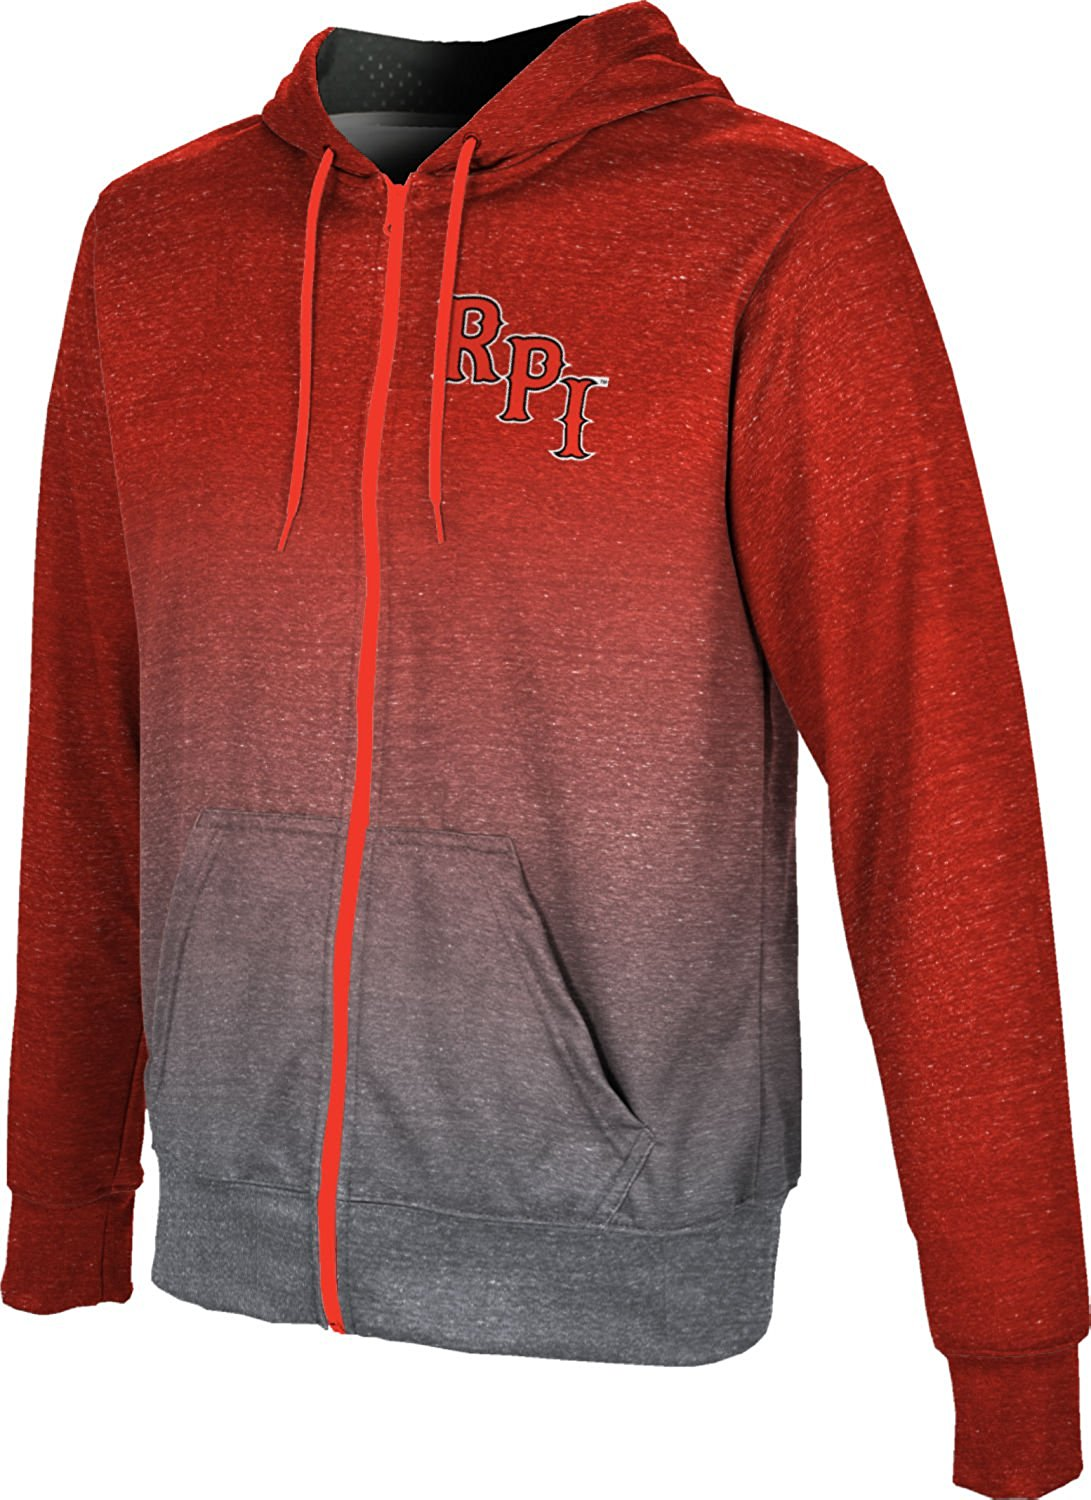 Rensselaer Polytechnic Institute University Boys' Fullzip Hoodie - Ombre